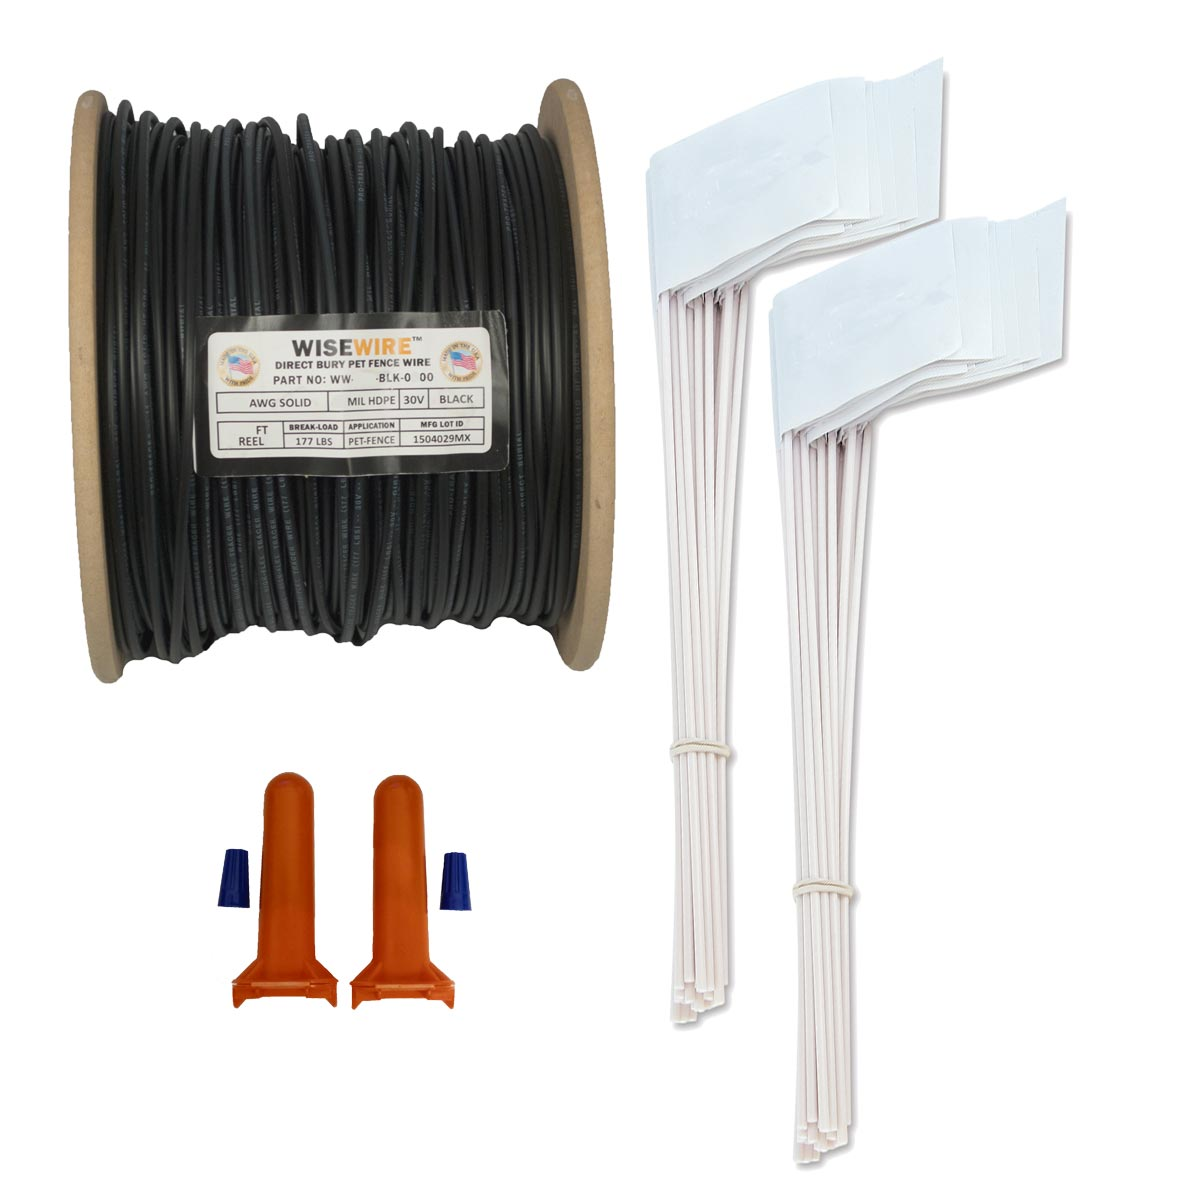 WiseWire? 18 gauge Boundary Wire Kit 1000ft